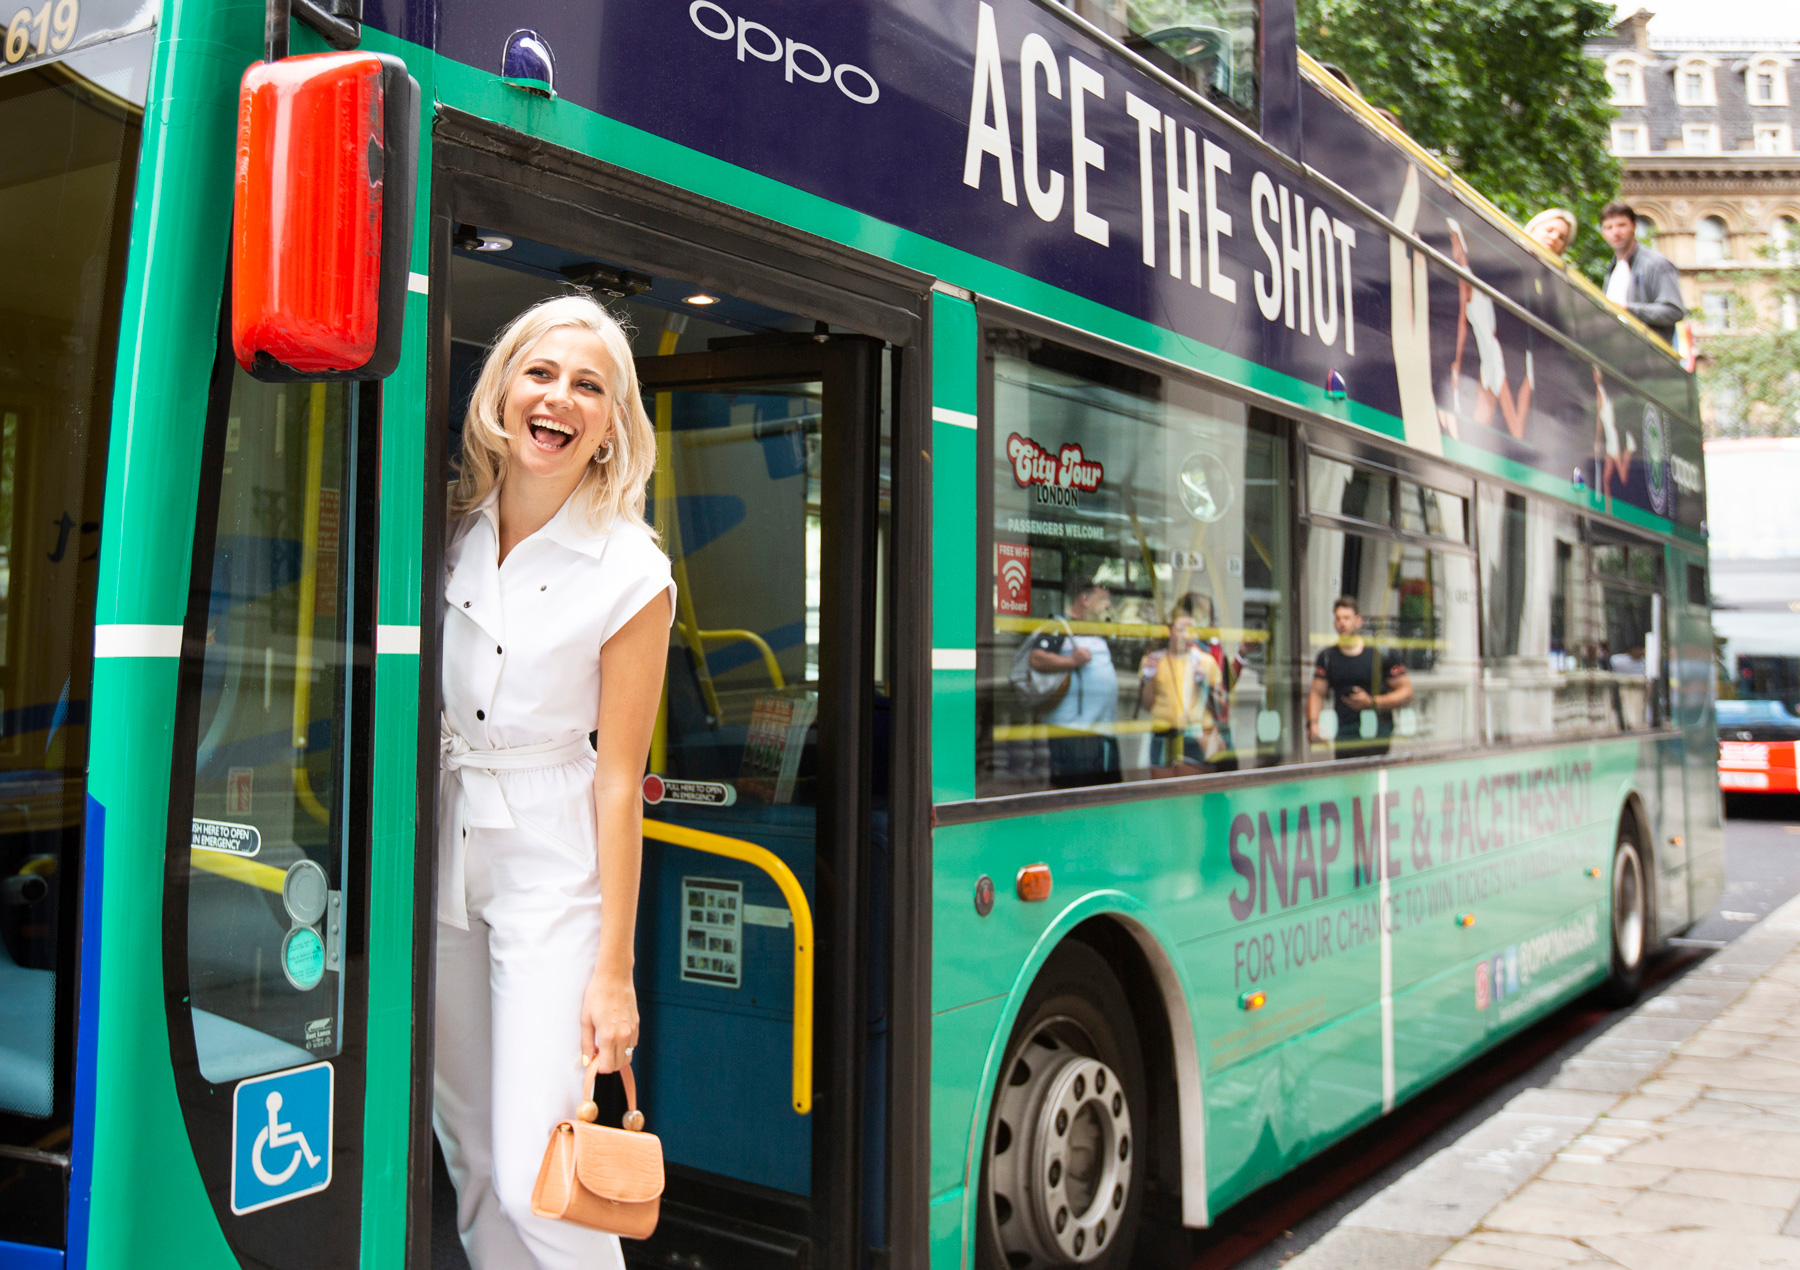 Pixie Lott aces the shot before The Championships, Wimbledon